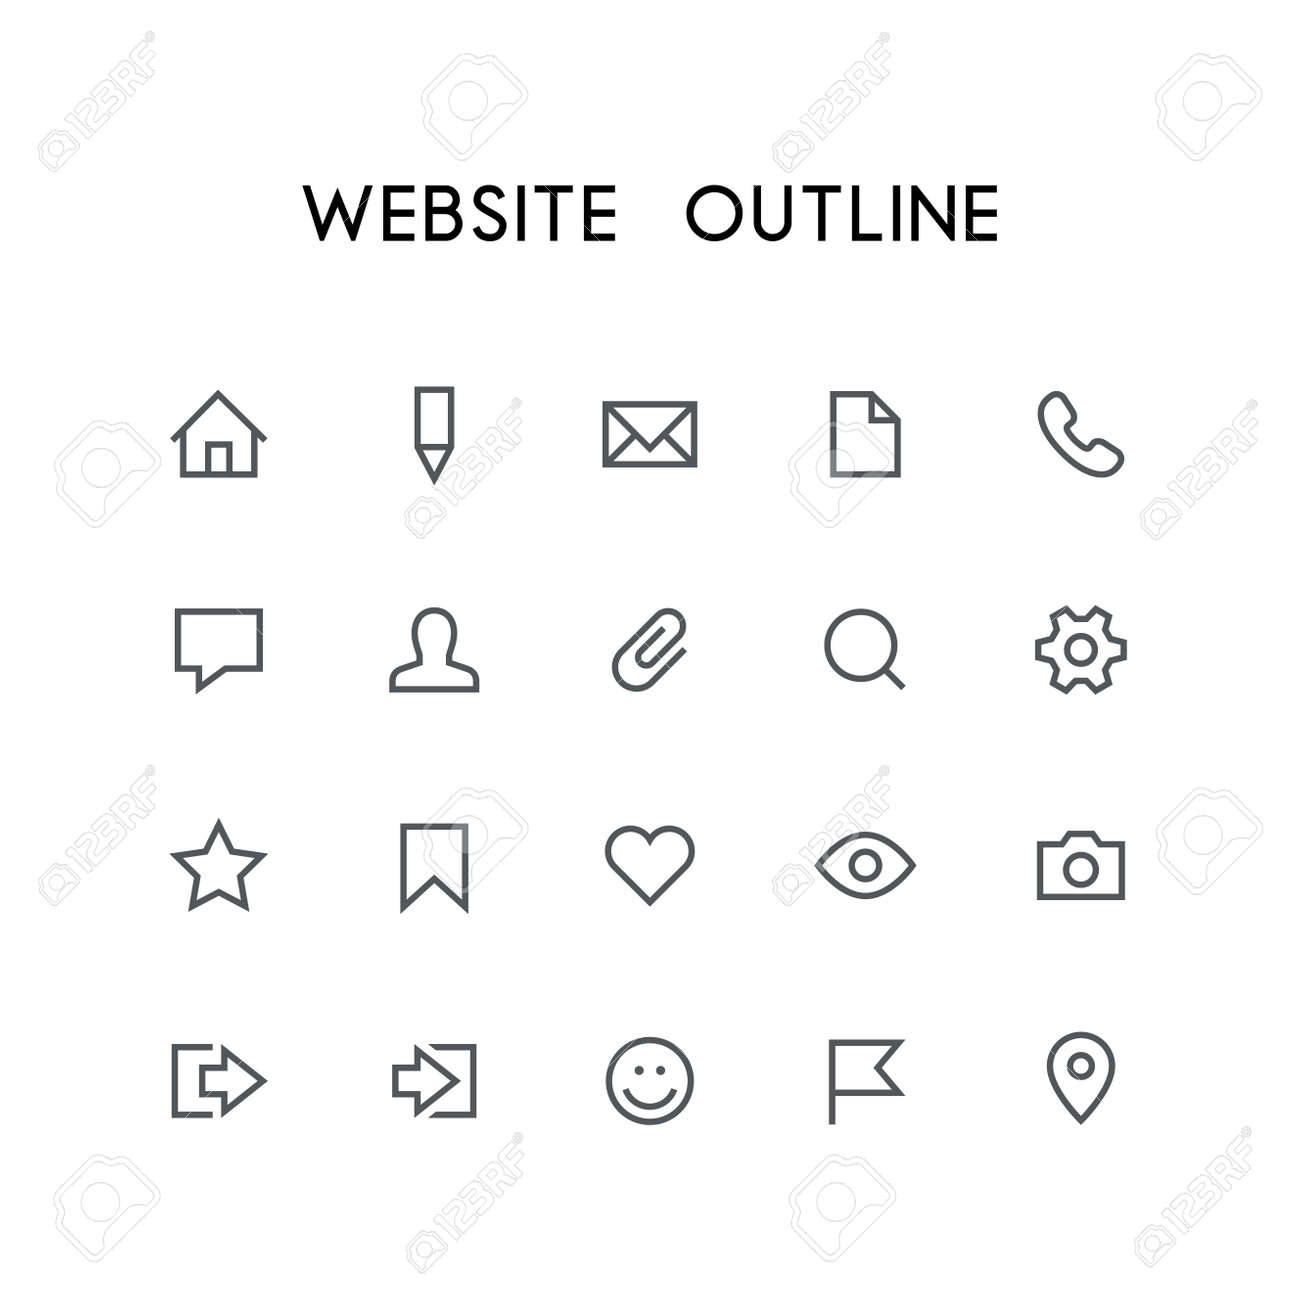 Website outline icon set home pencil document phone chat website outline icon set home pencil document phone chat mail sciox Gallery